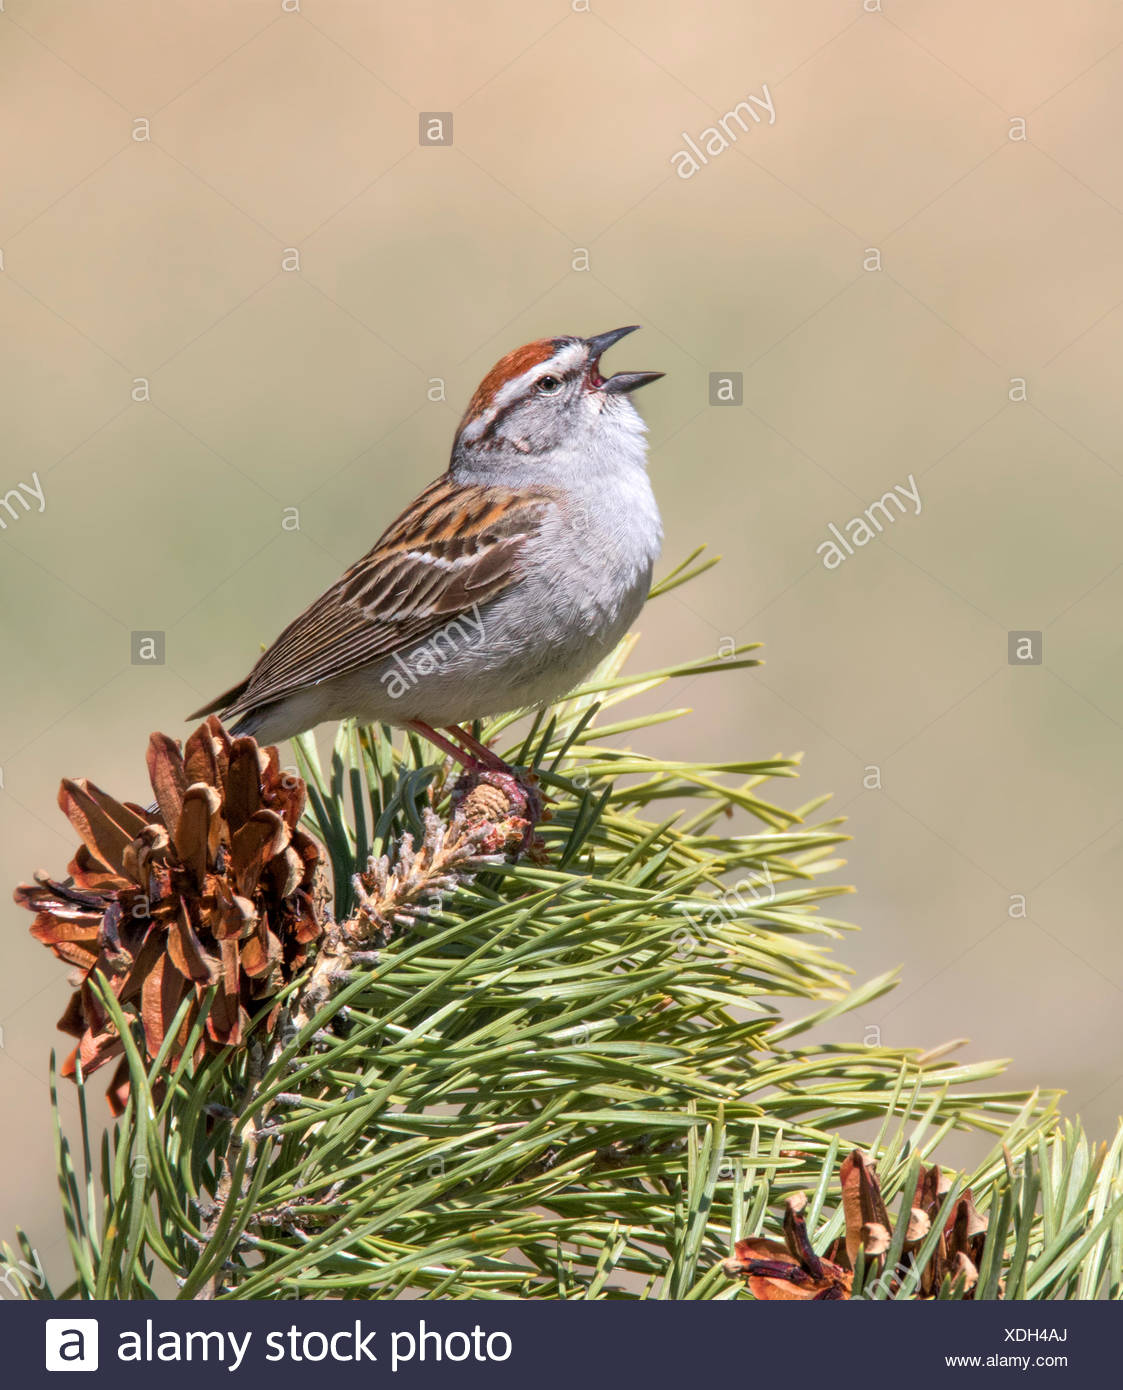 A male Chipping Sparrow, Spizella passerina, sings from a spruce tree in Saskatchewan, Canada - Stock Image